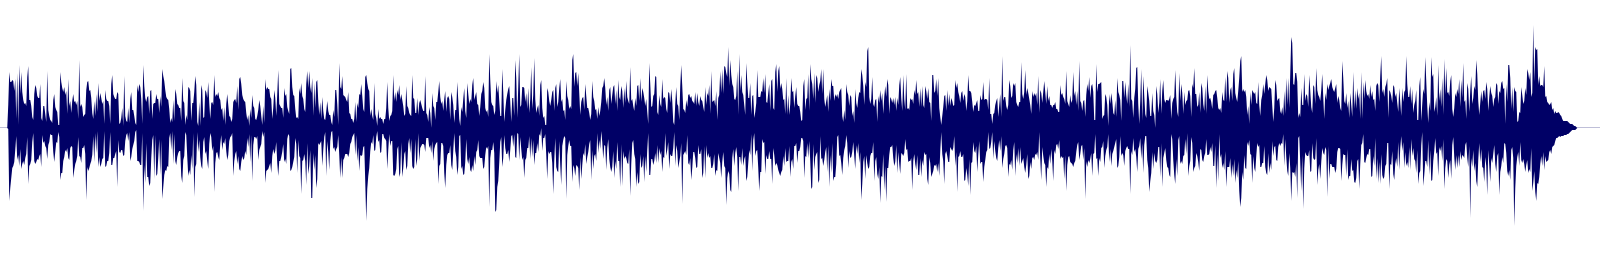 waveform of track #137131